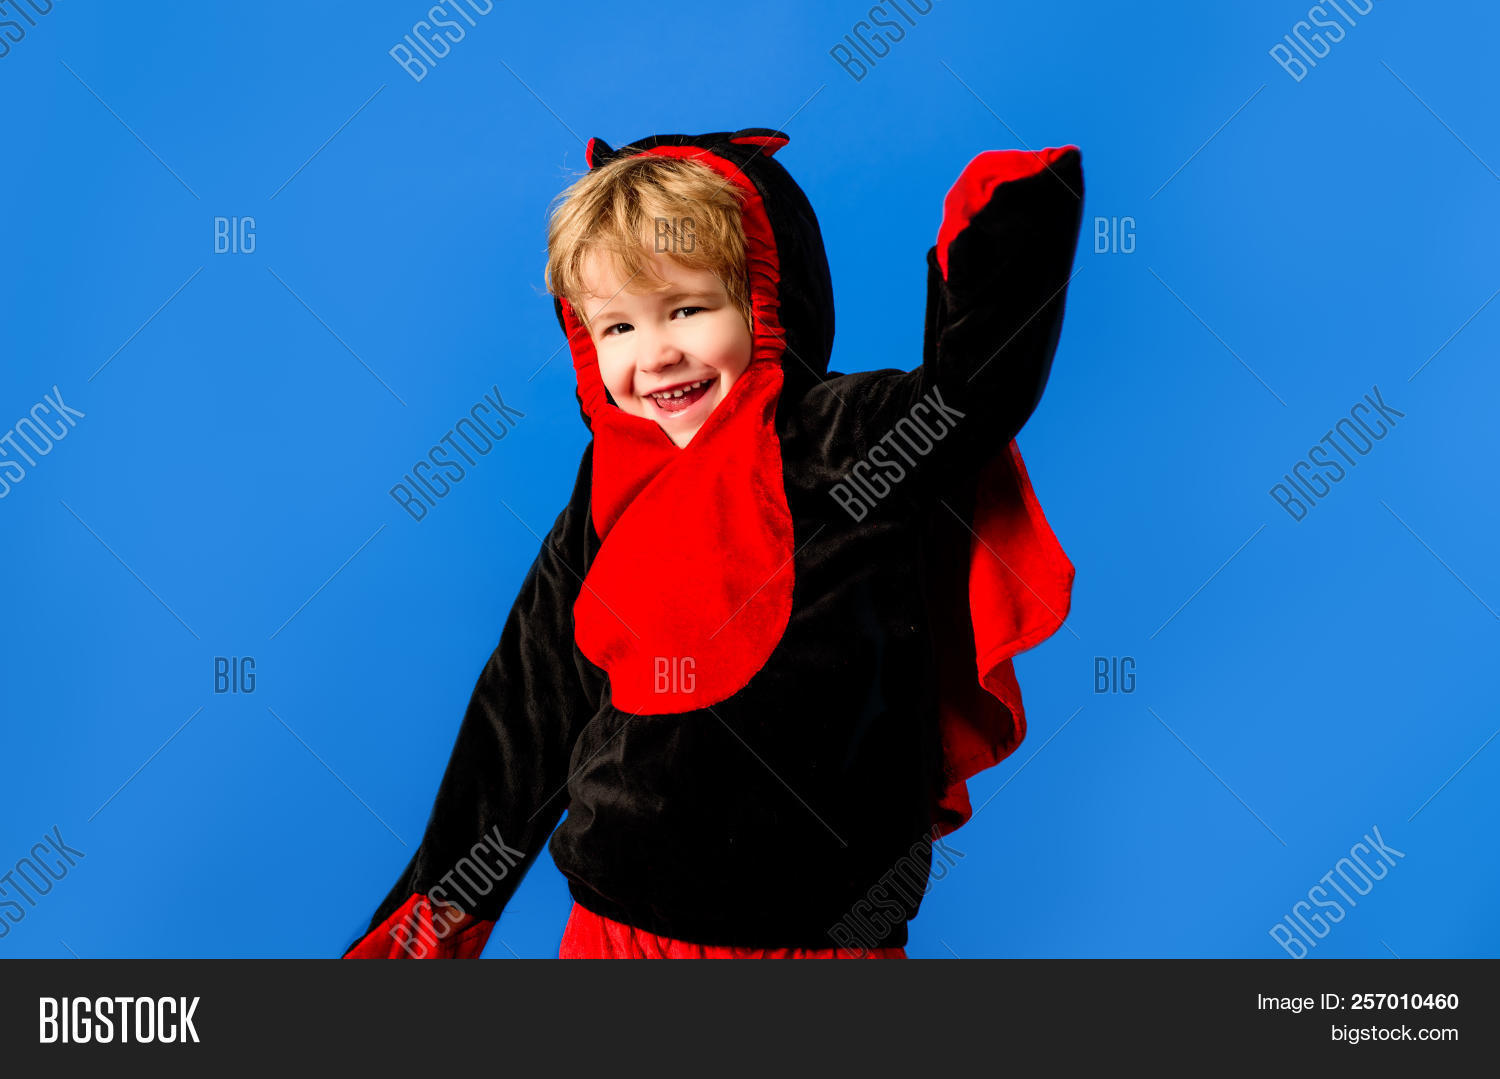 4a9772e0fd8c1 Little Boy Black&red Image & Photo (Free Trial) | Bigstock